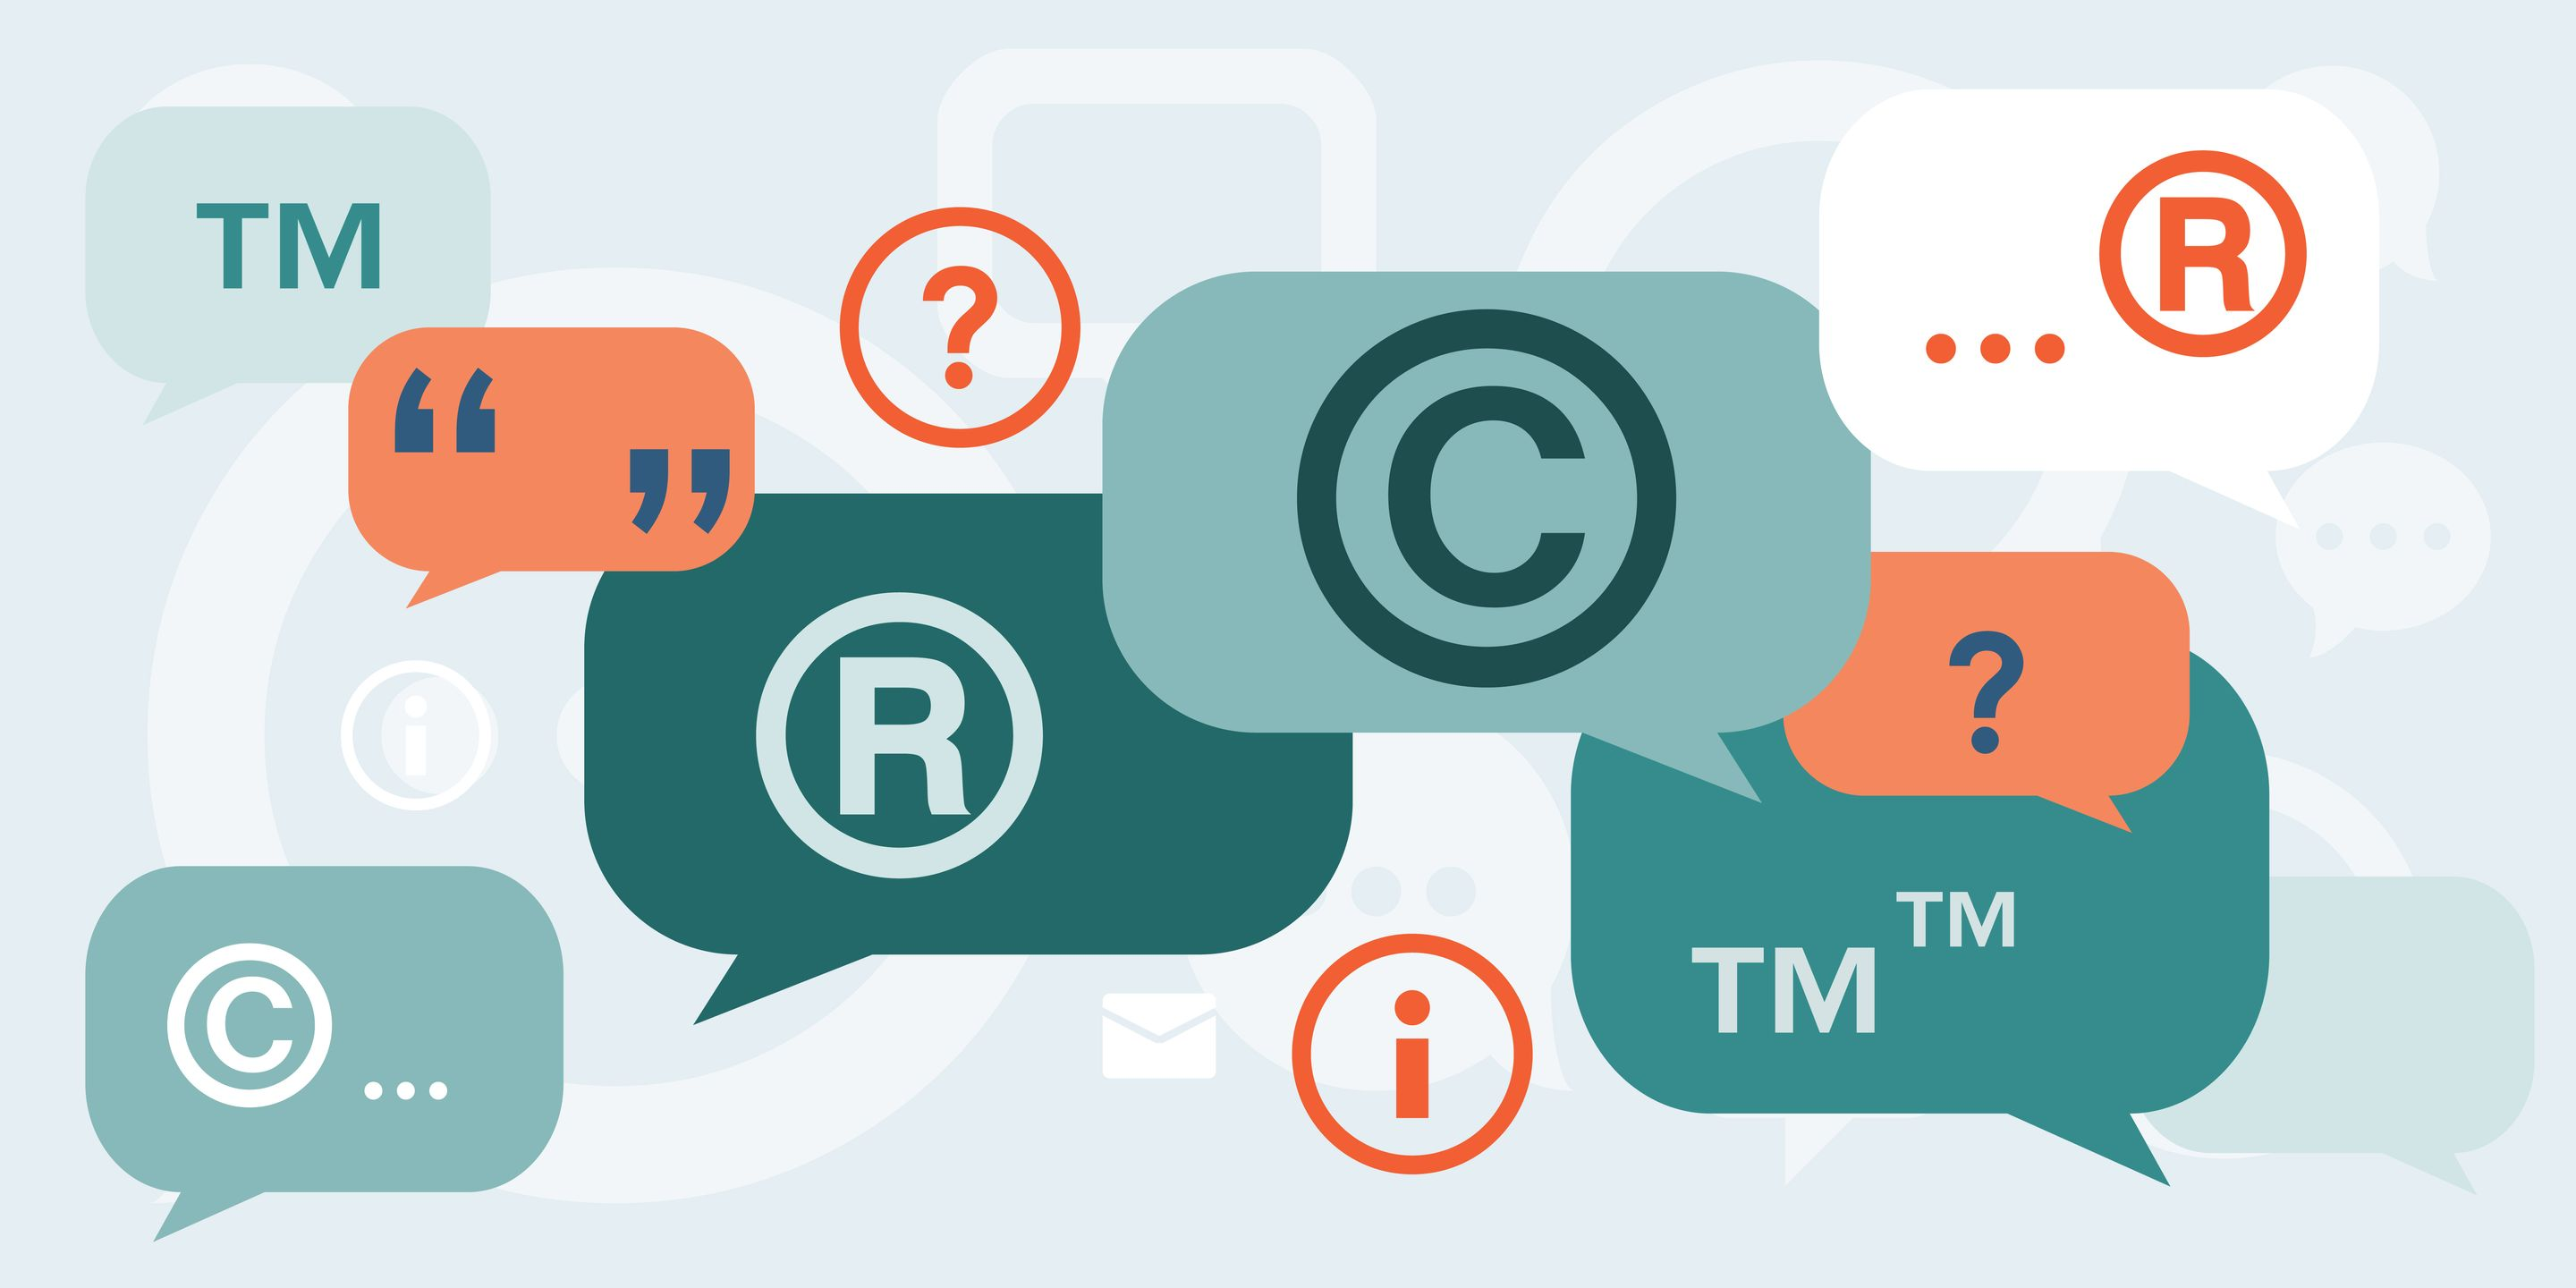 An illustration of word bubbles with copyright symbols and various punctuation marks